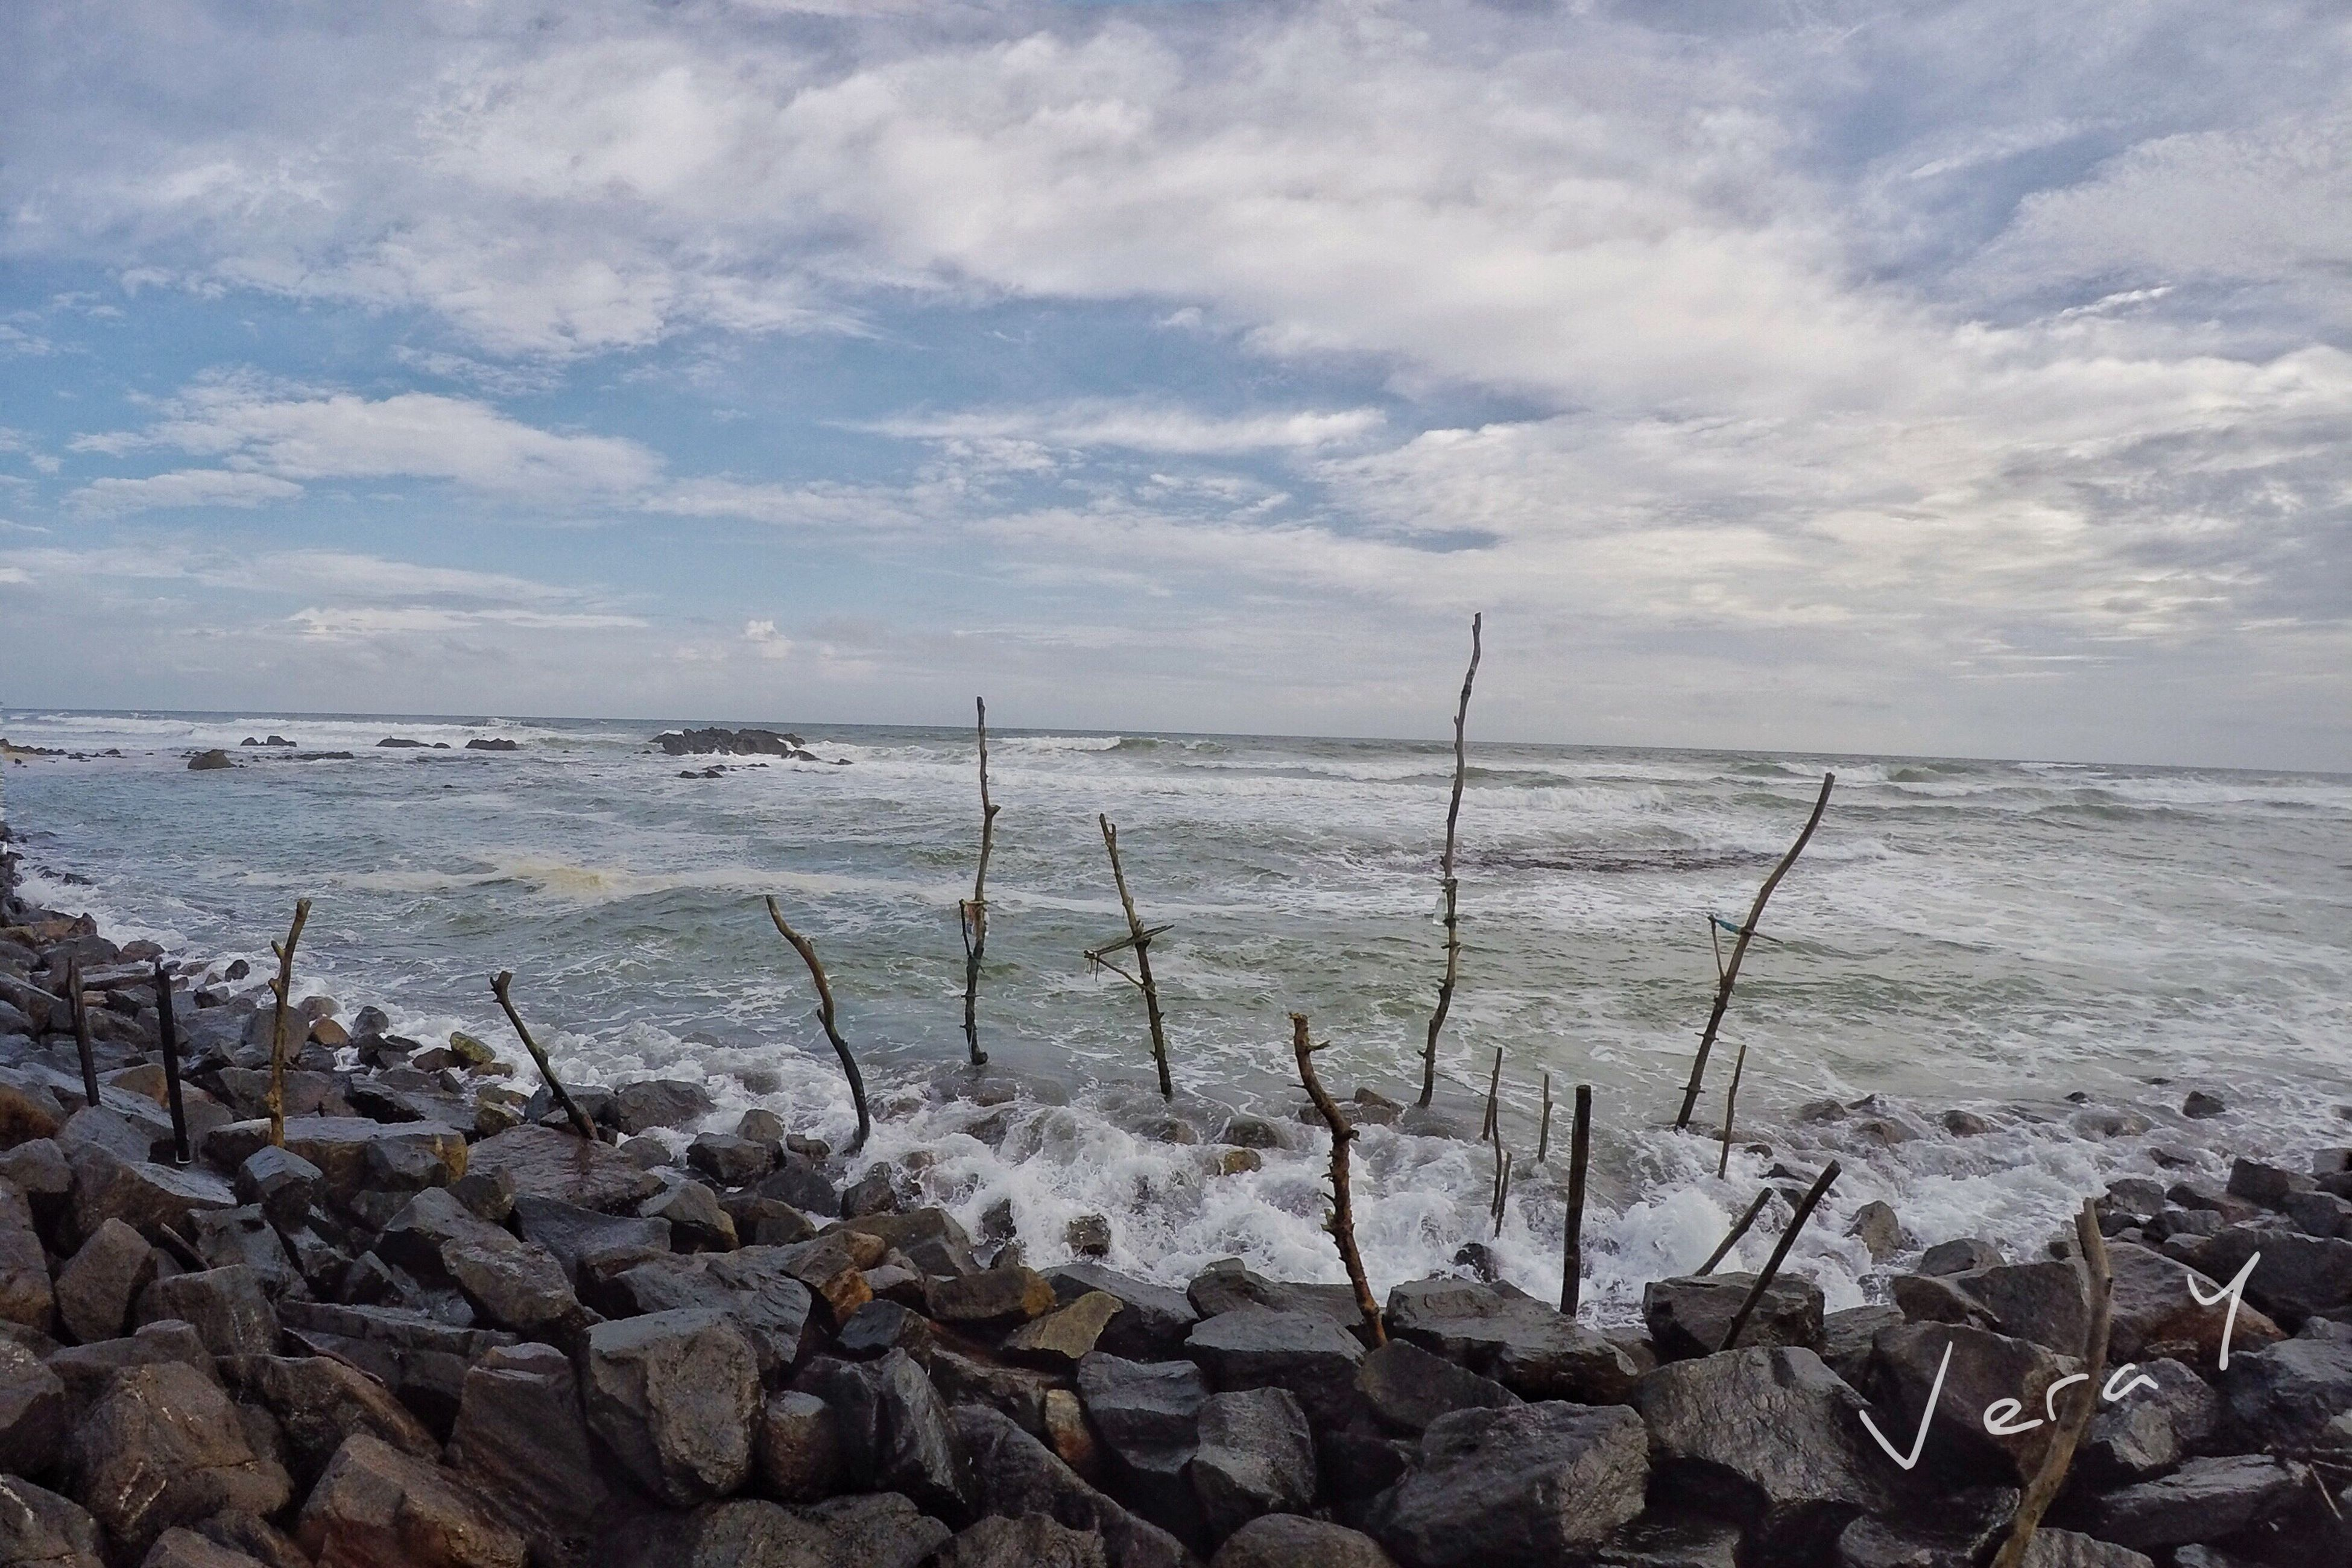 water, sky, sea, tranquility, tranquil scene, horizon over water, scenics, beauty in nature, cloud - sky, nature, rock - object, shore, stone - object, beach, cloudy, cloud, idyllic, lake, plant, remote